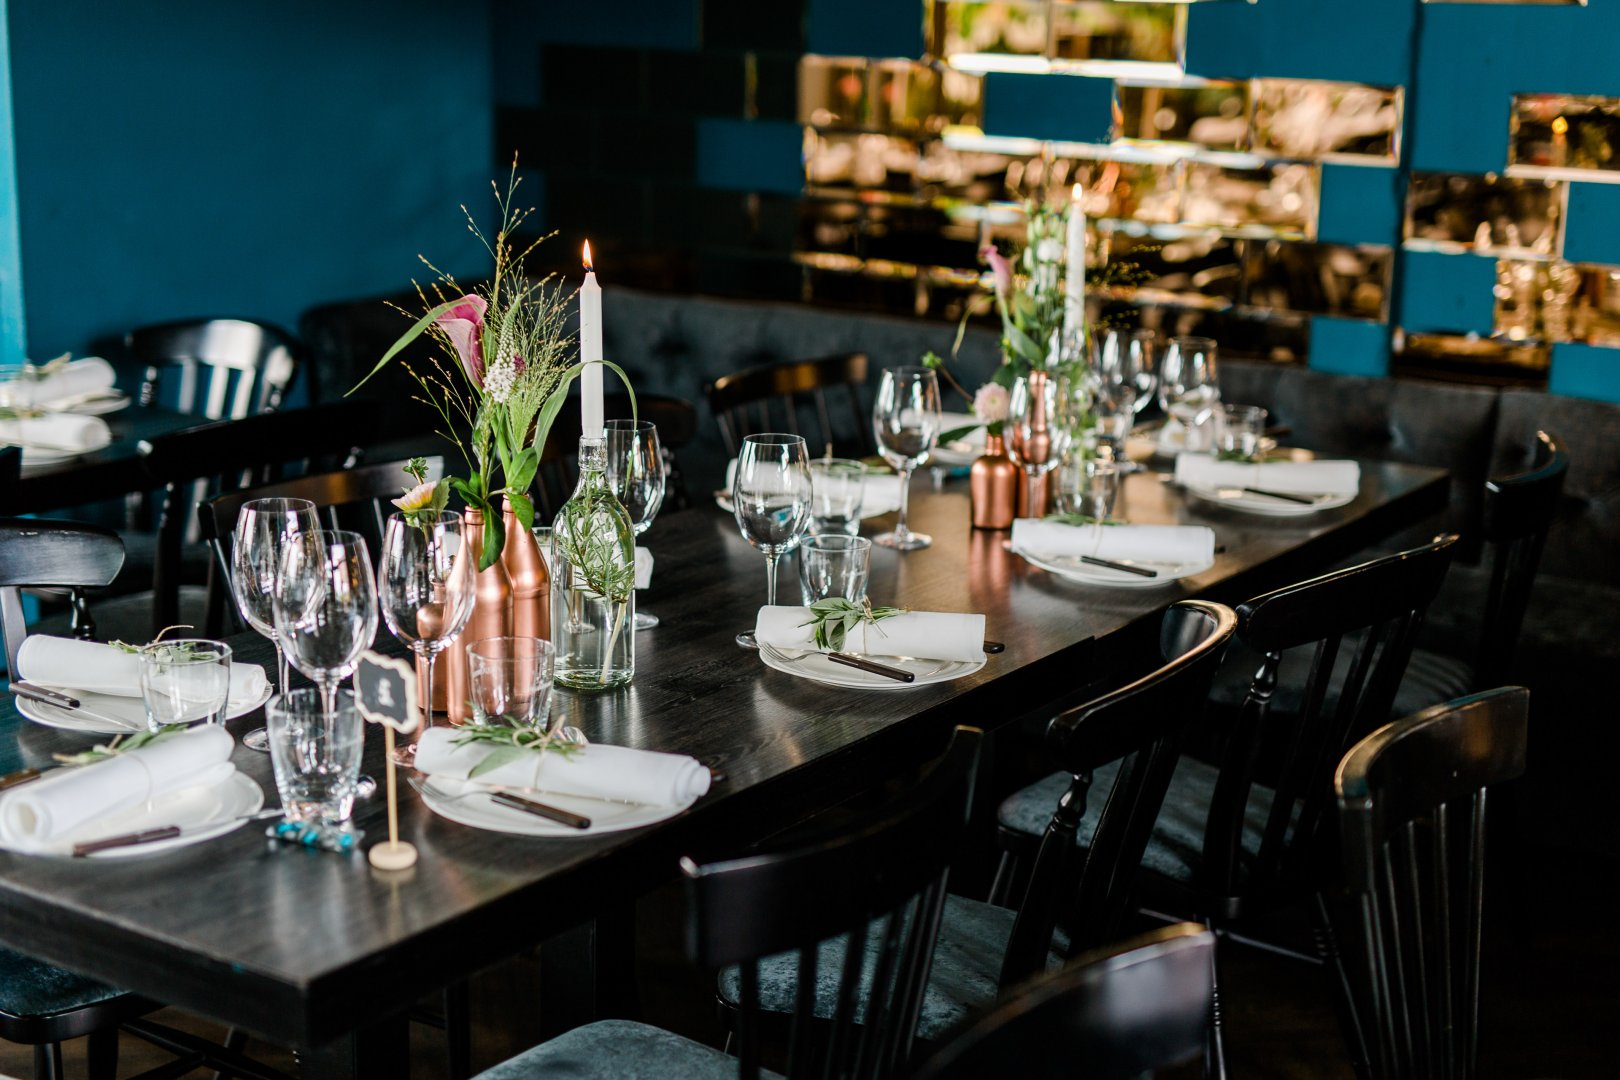 Table Restaurant Room Furniture Rehearsal dinner Architecture Brunch Interior design Photography Meal Chair Lunch Glass Flower Building